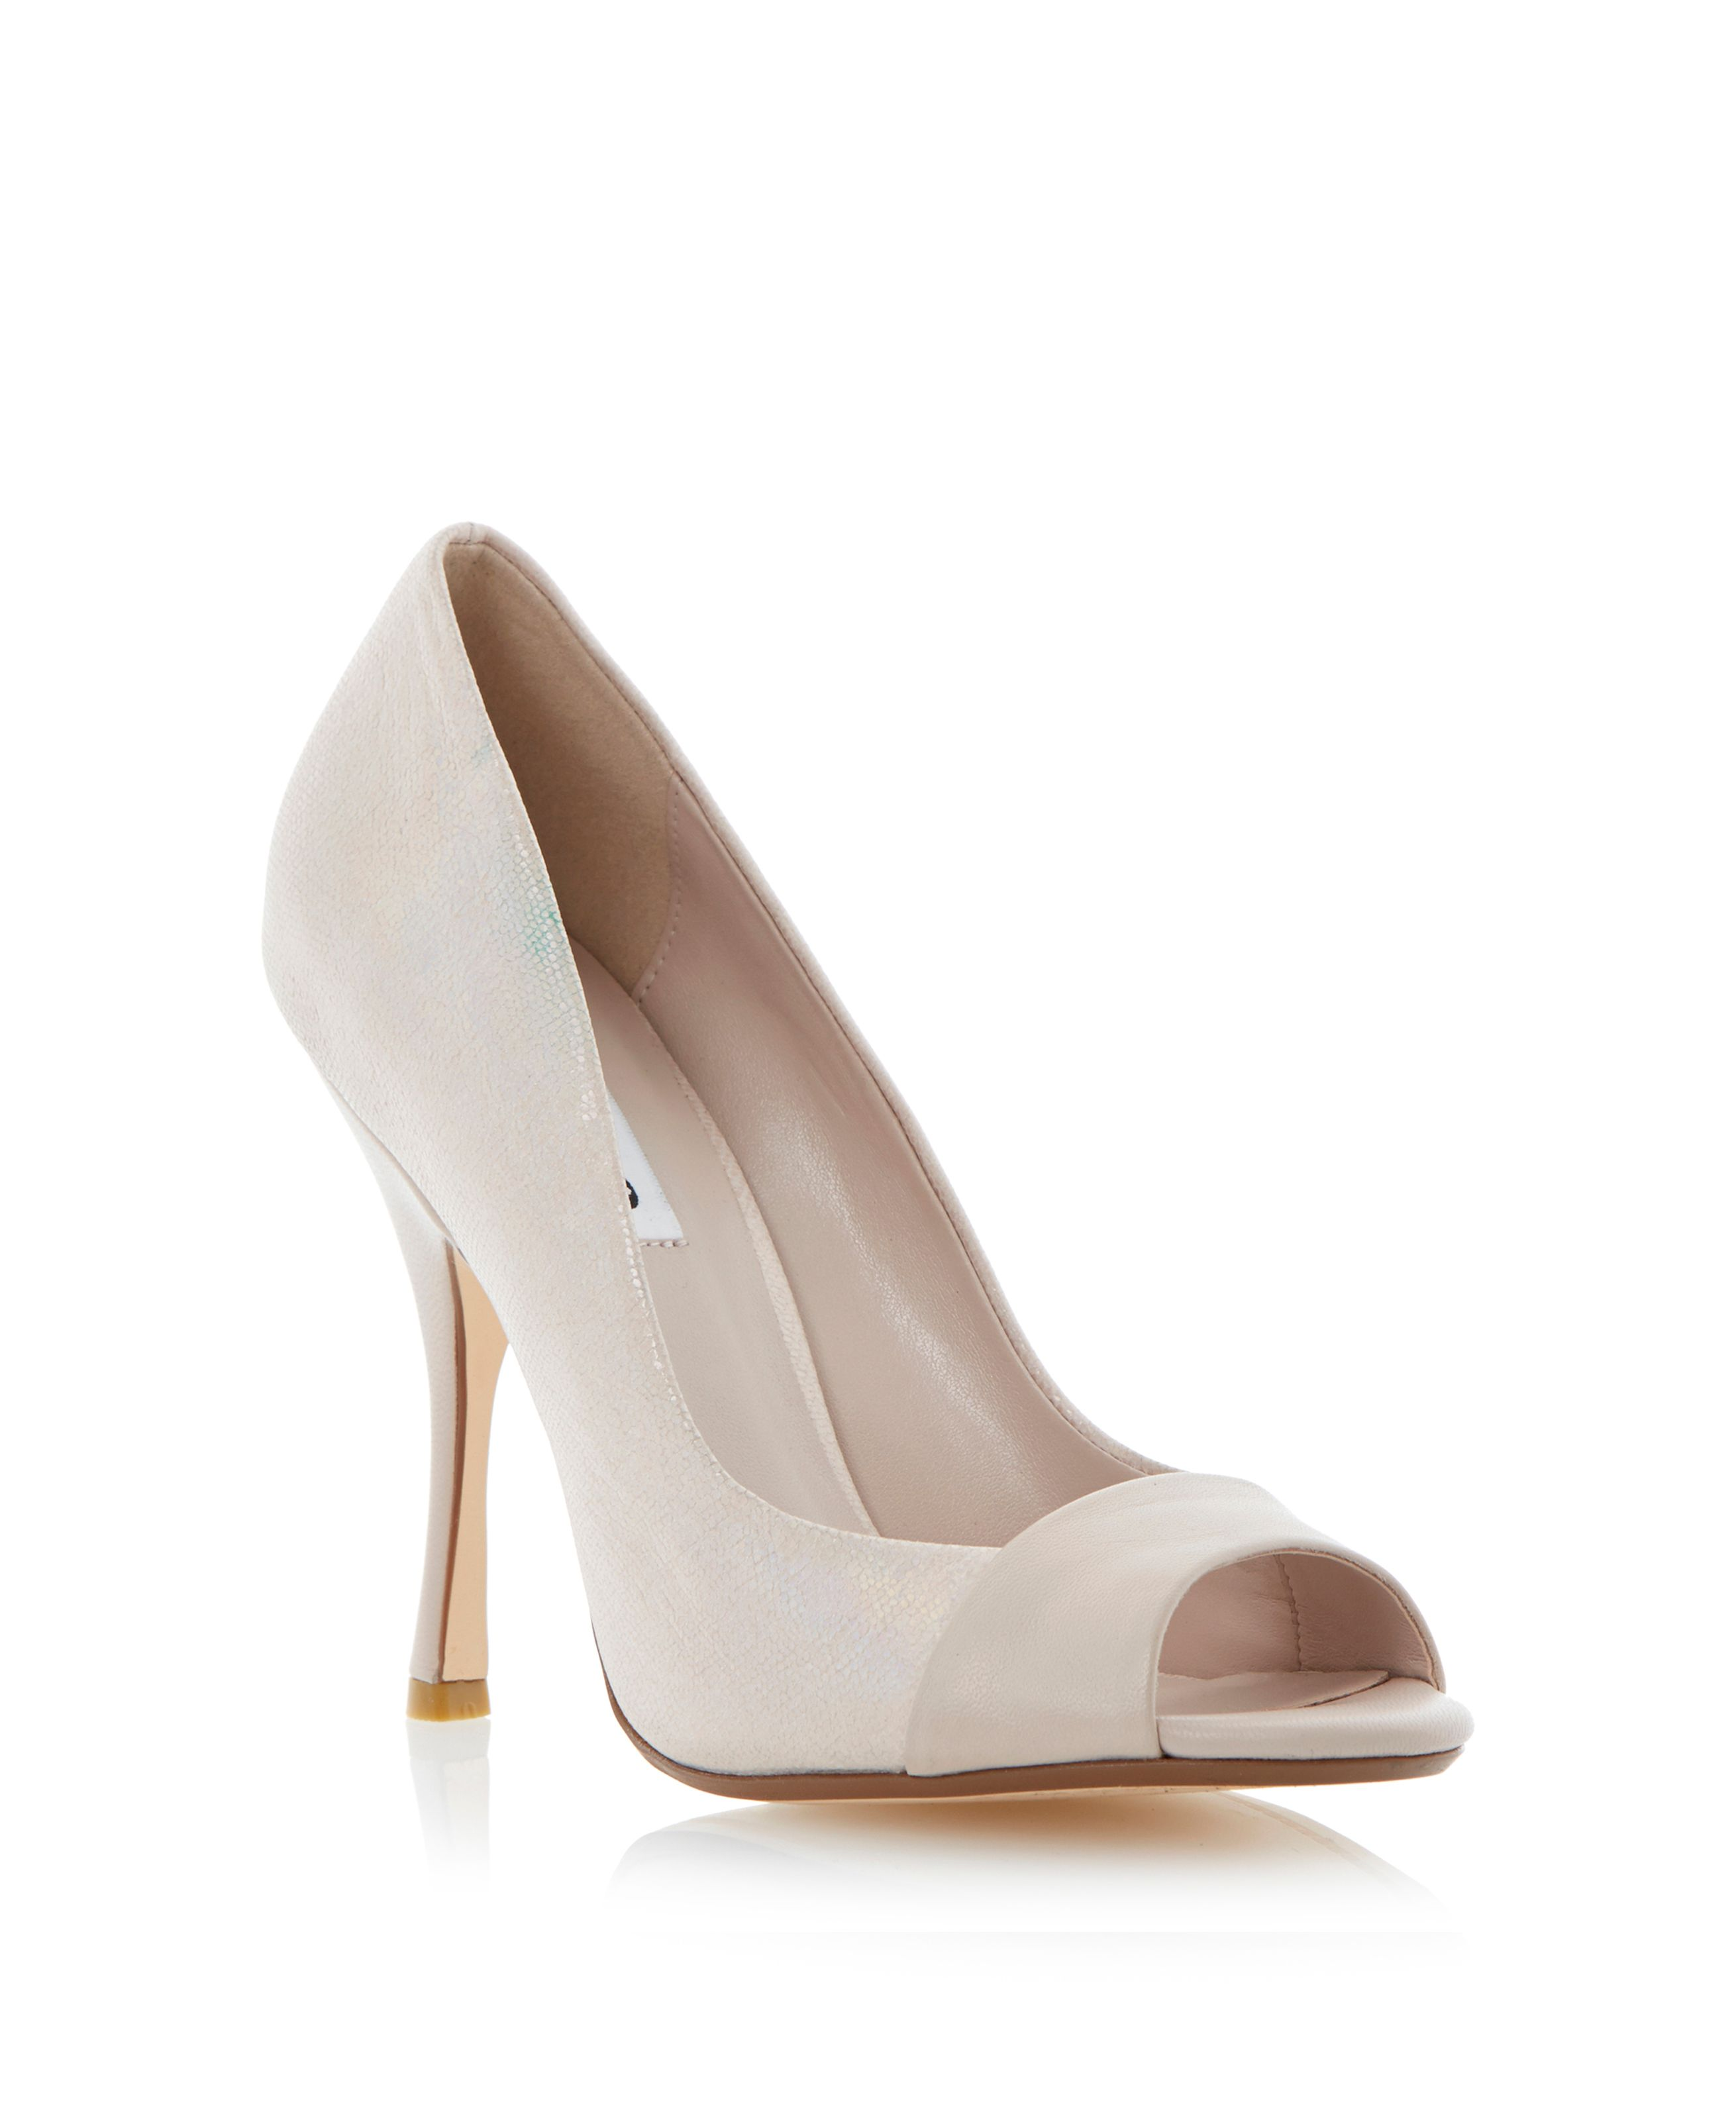 Carine leather peeptoe stiletto court shoes